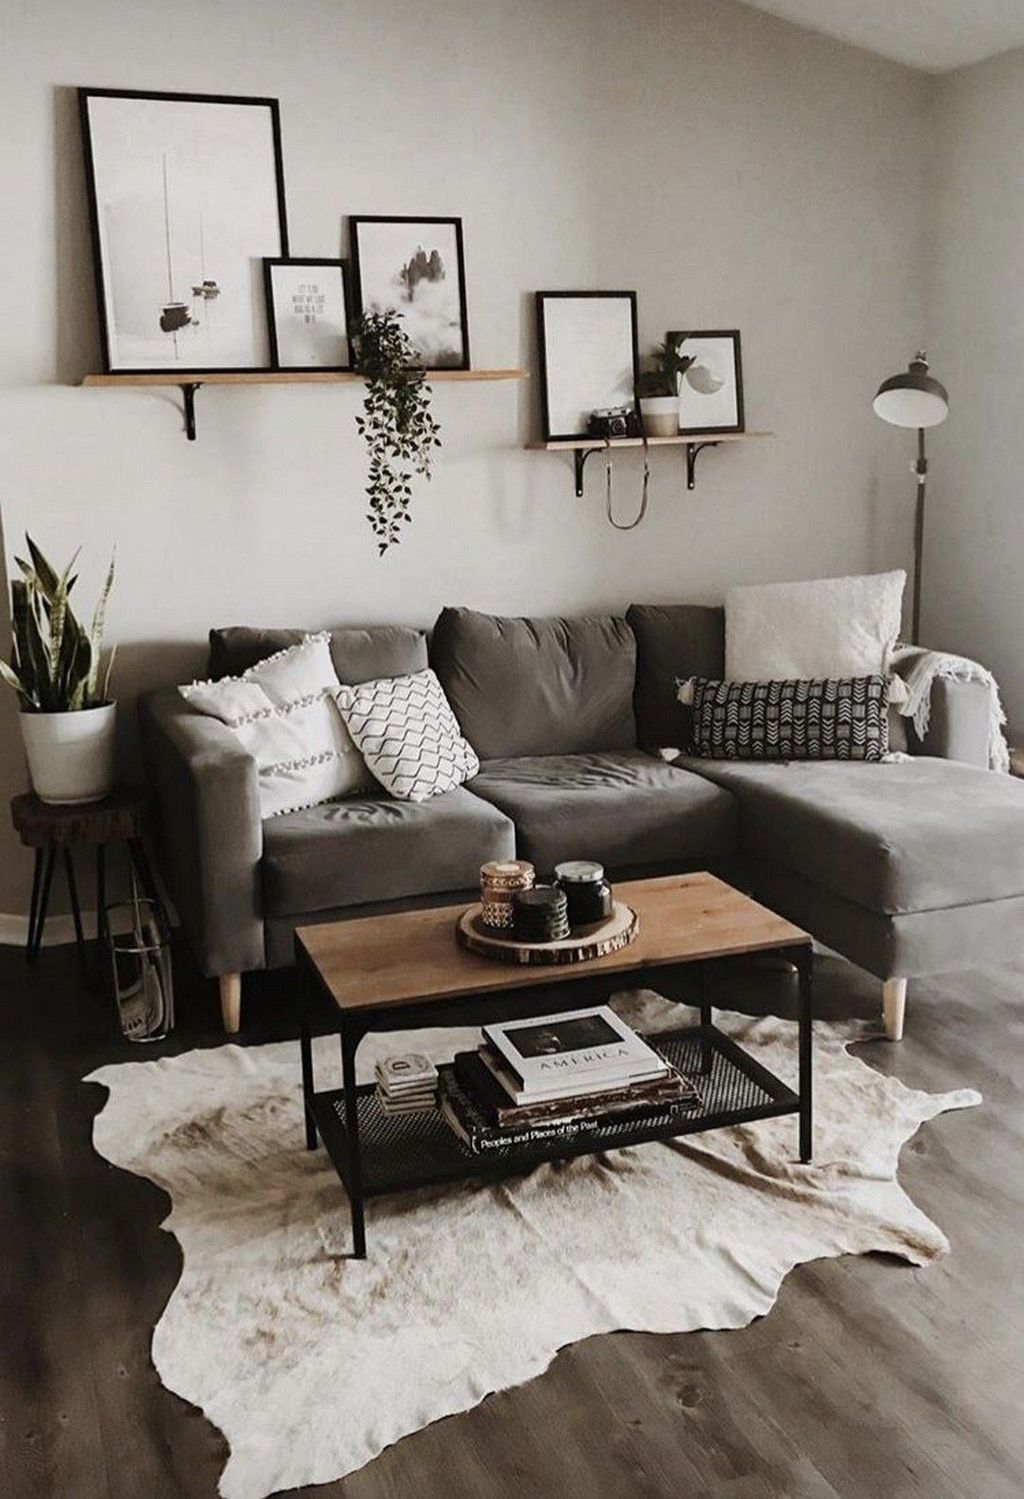 Awesome Simple Apartment Decoration Ideas You Must Try Living Room Design Small Spaces Living Room Decor Modern Small Living Room Design